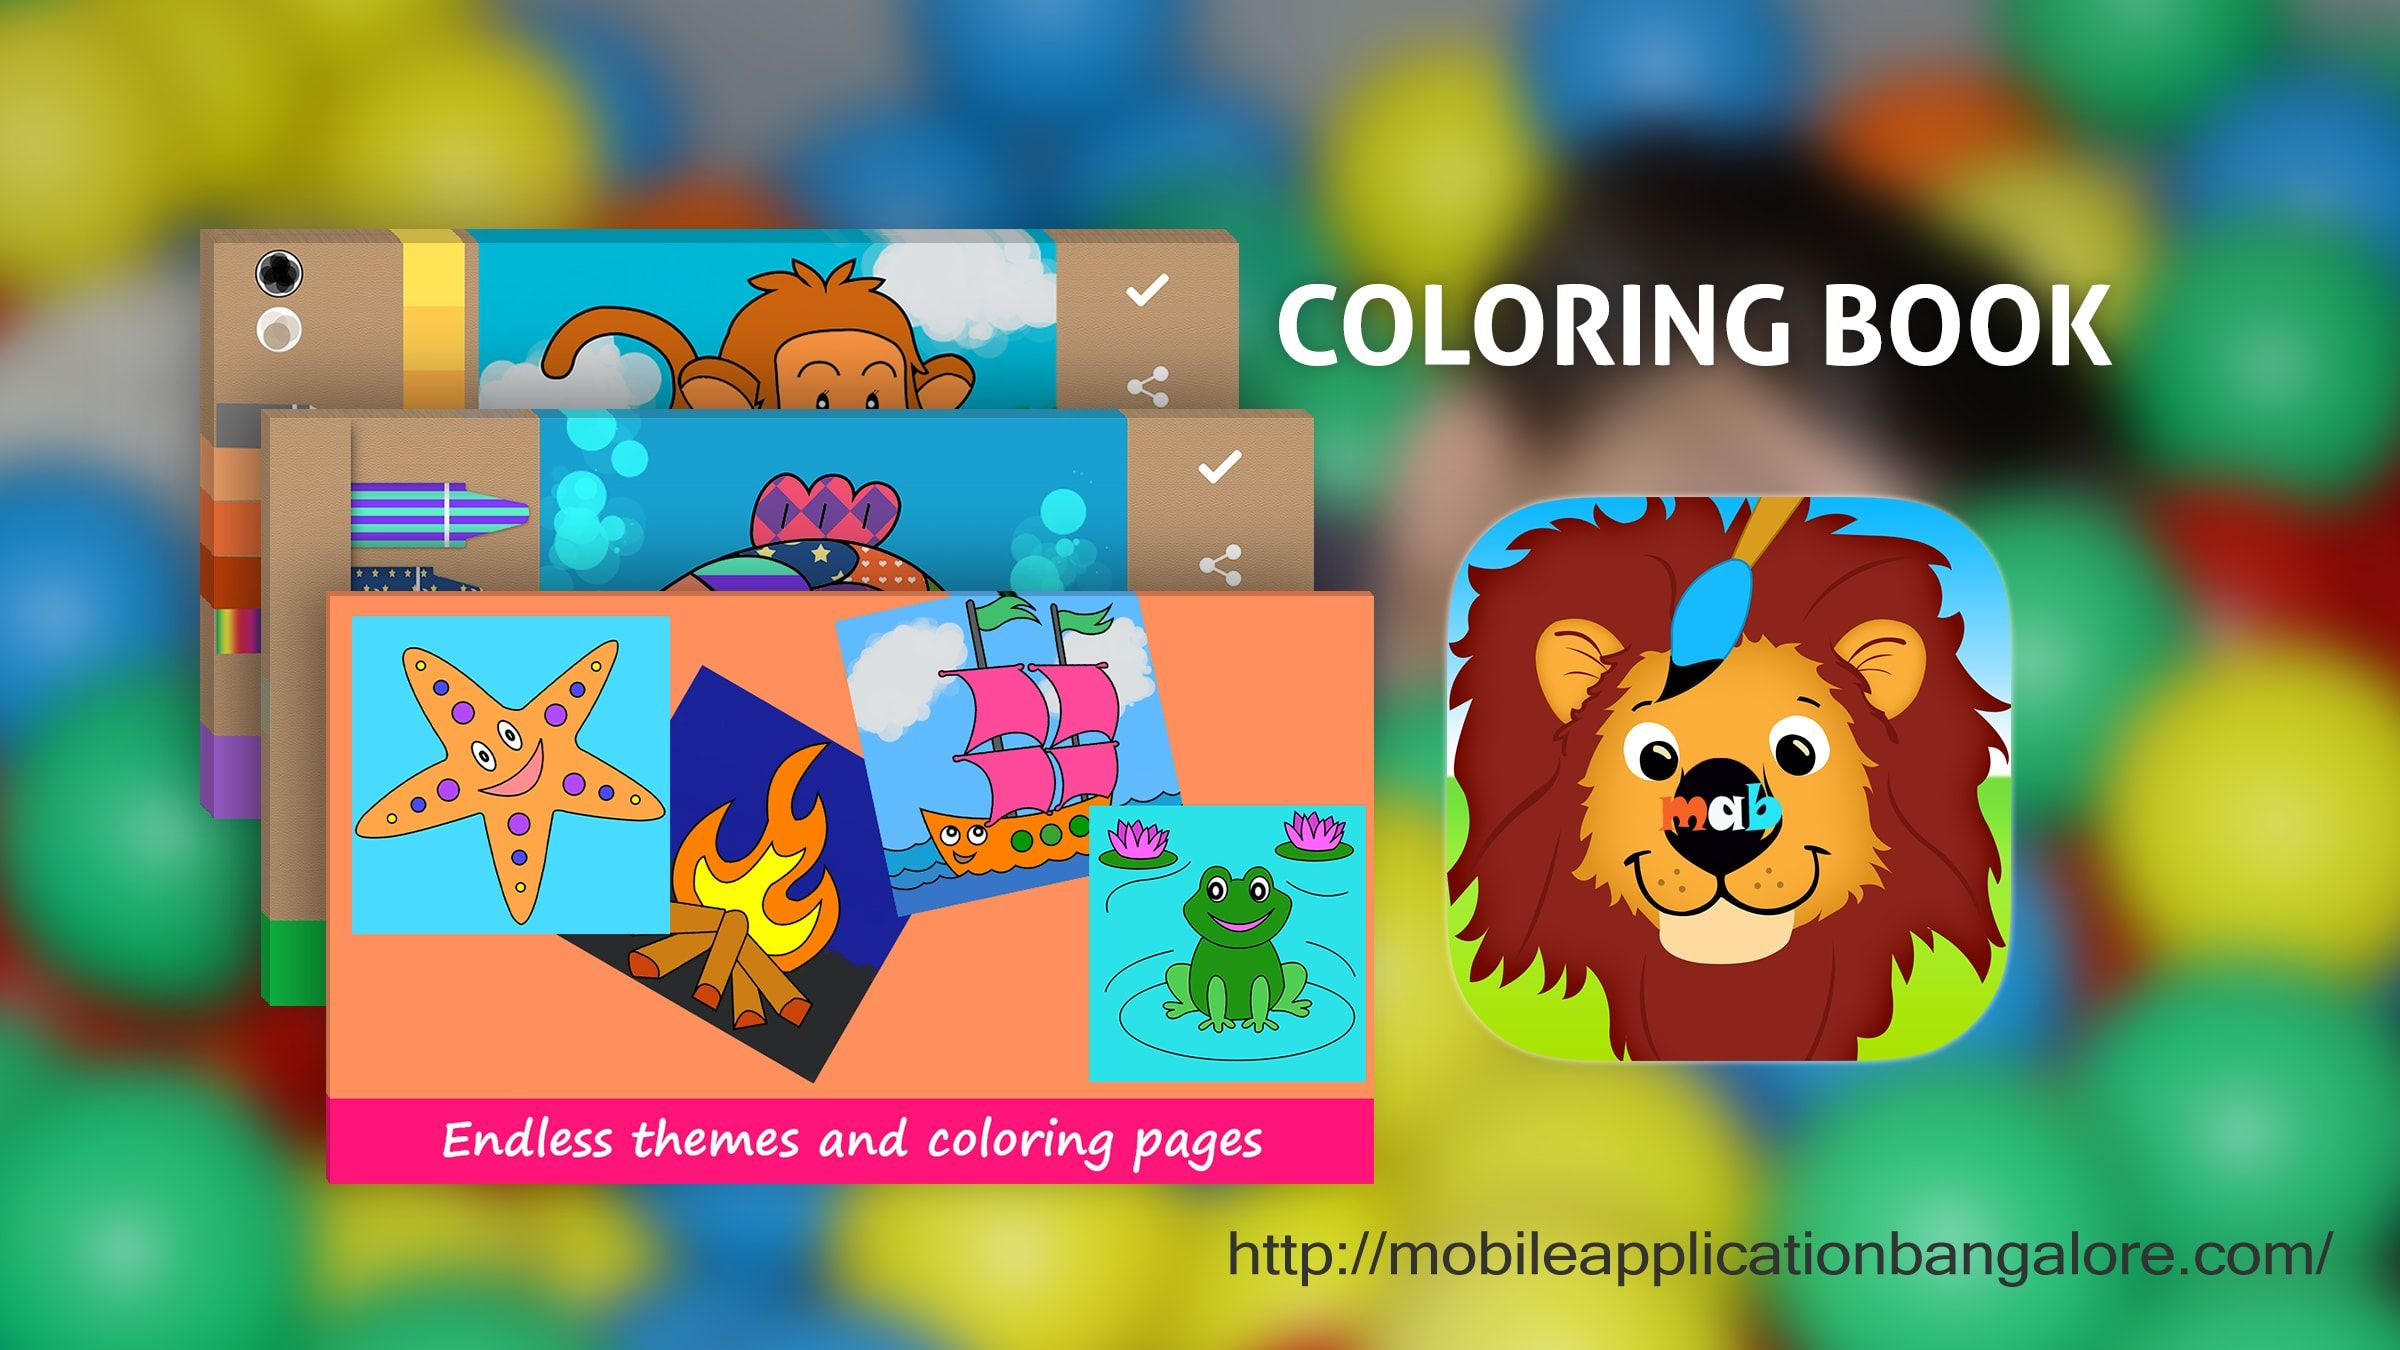 Coloring Book Android Mobile App 2017 Is A Kind Of Entertainment